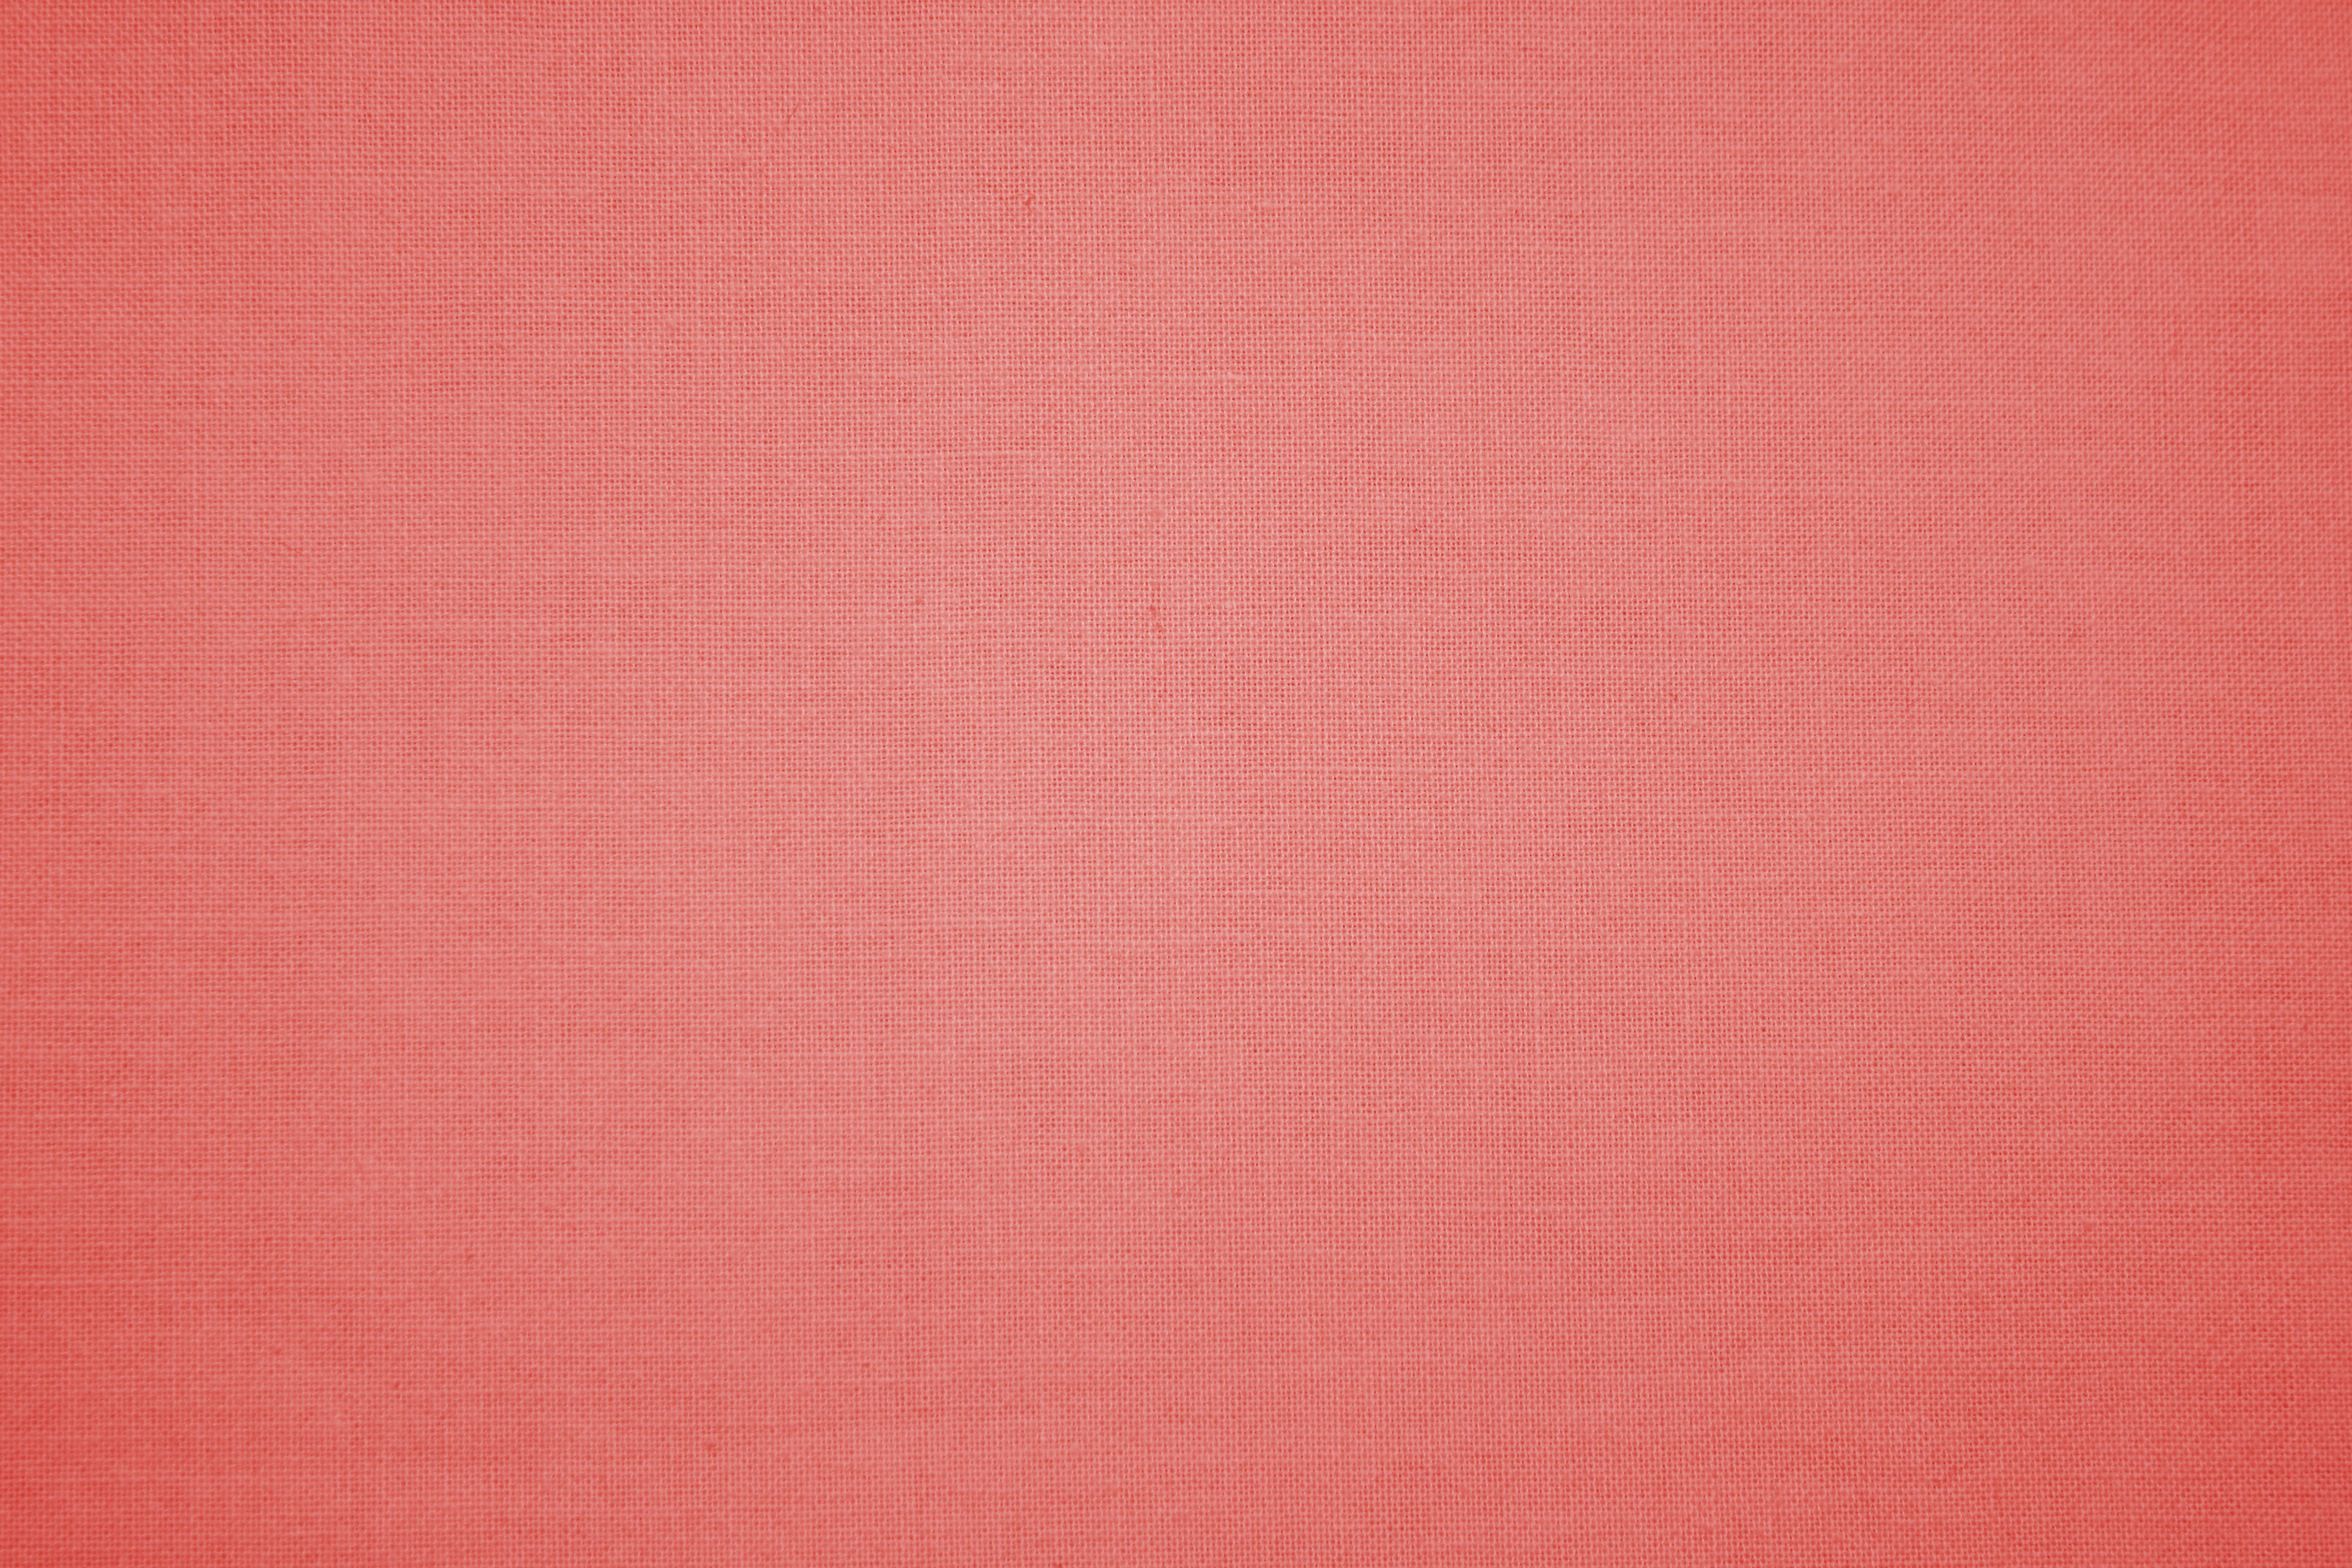 Light Red Canvas Fabric Texture Picture | Free Photograph | Photos ...